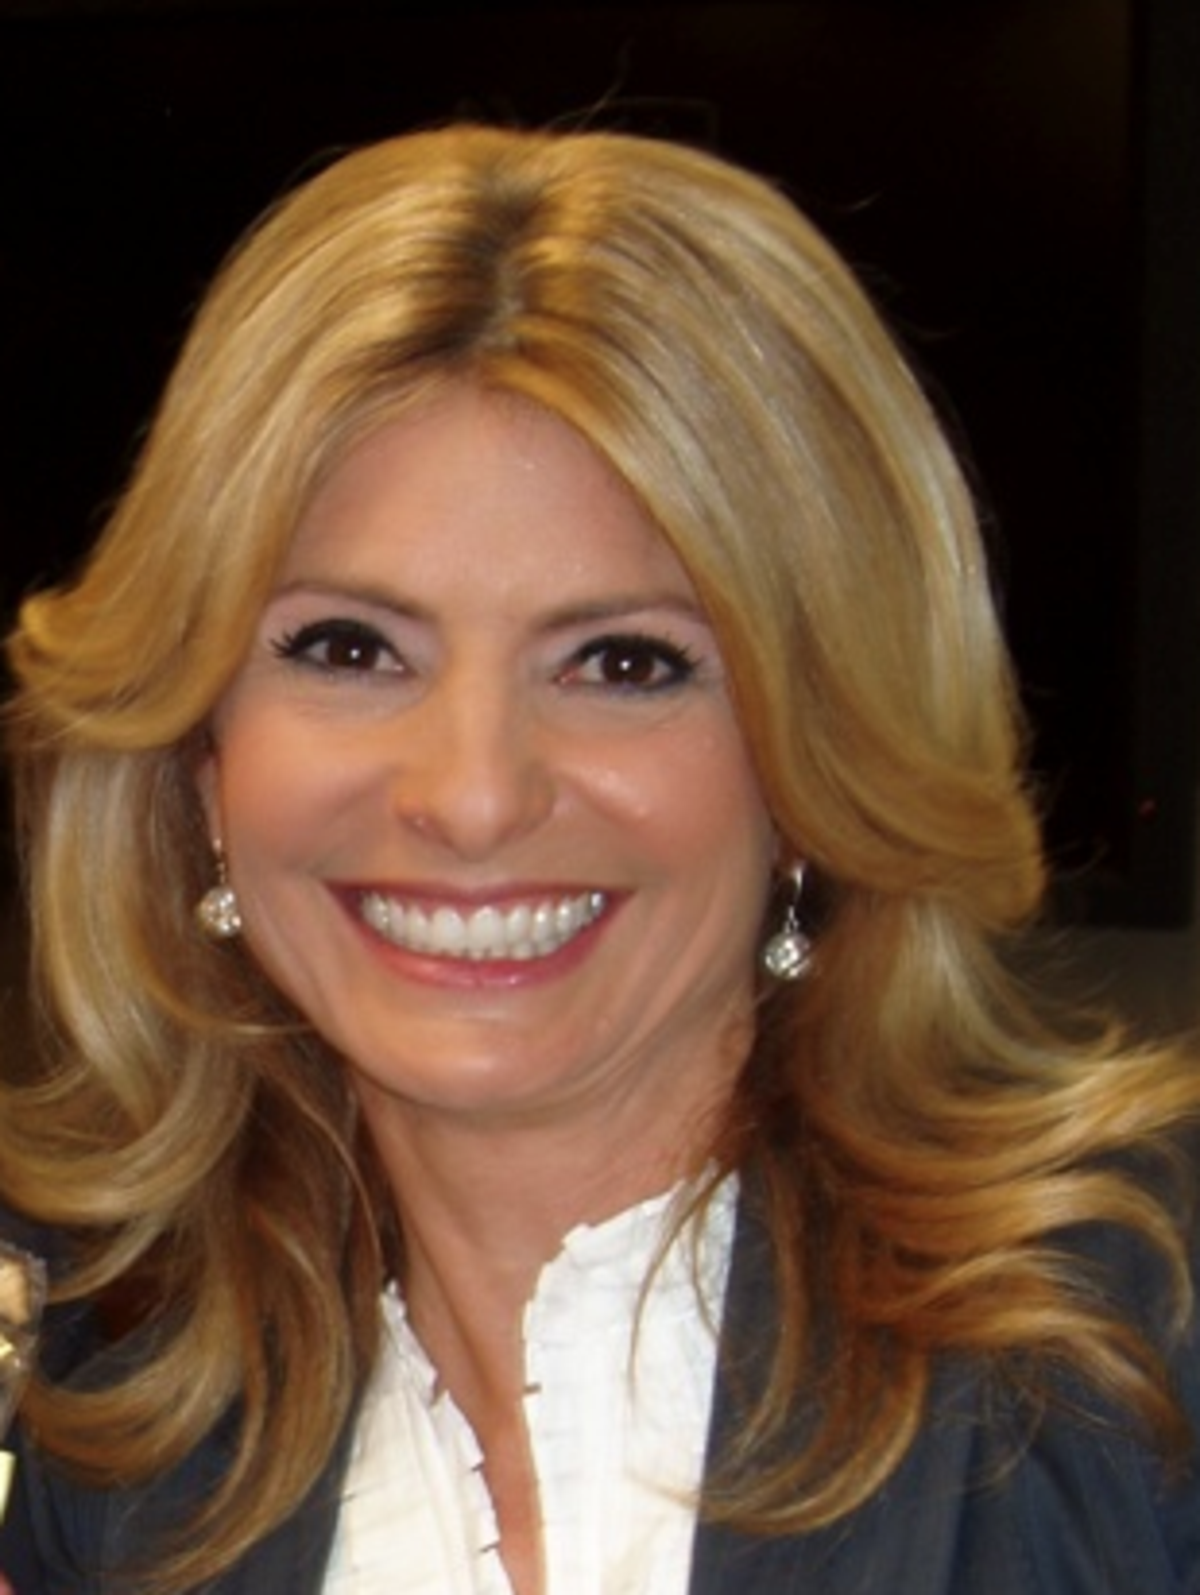 lisa bloom - wikipedia